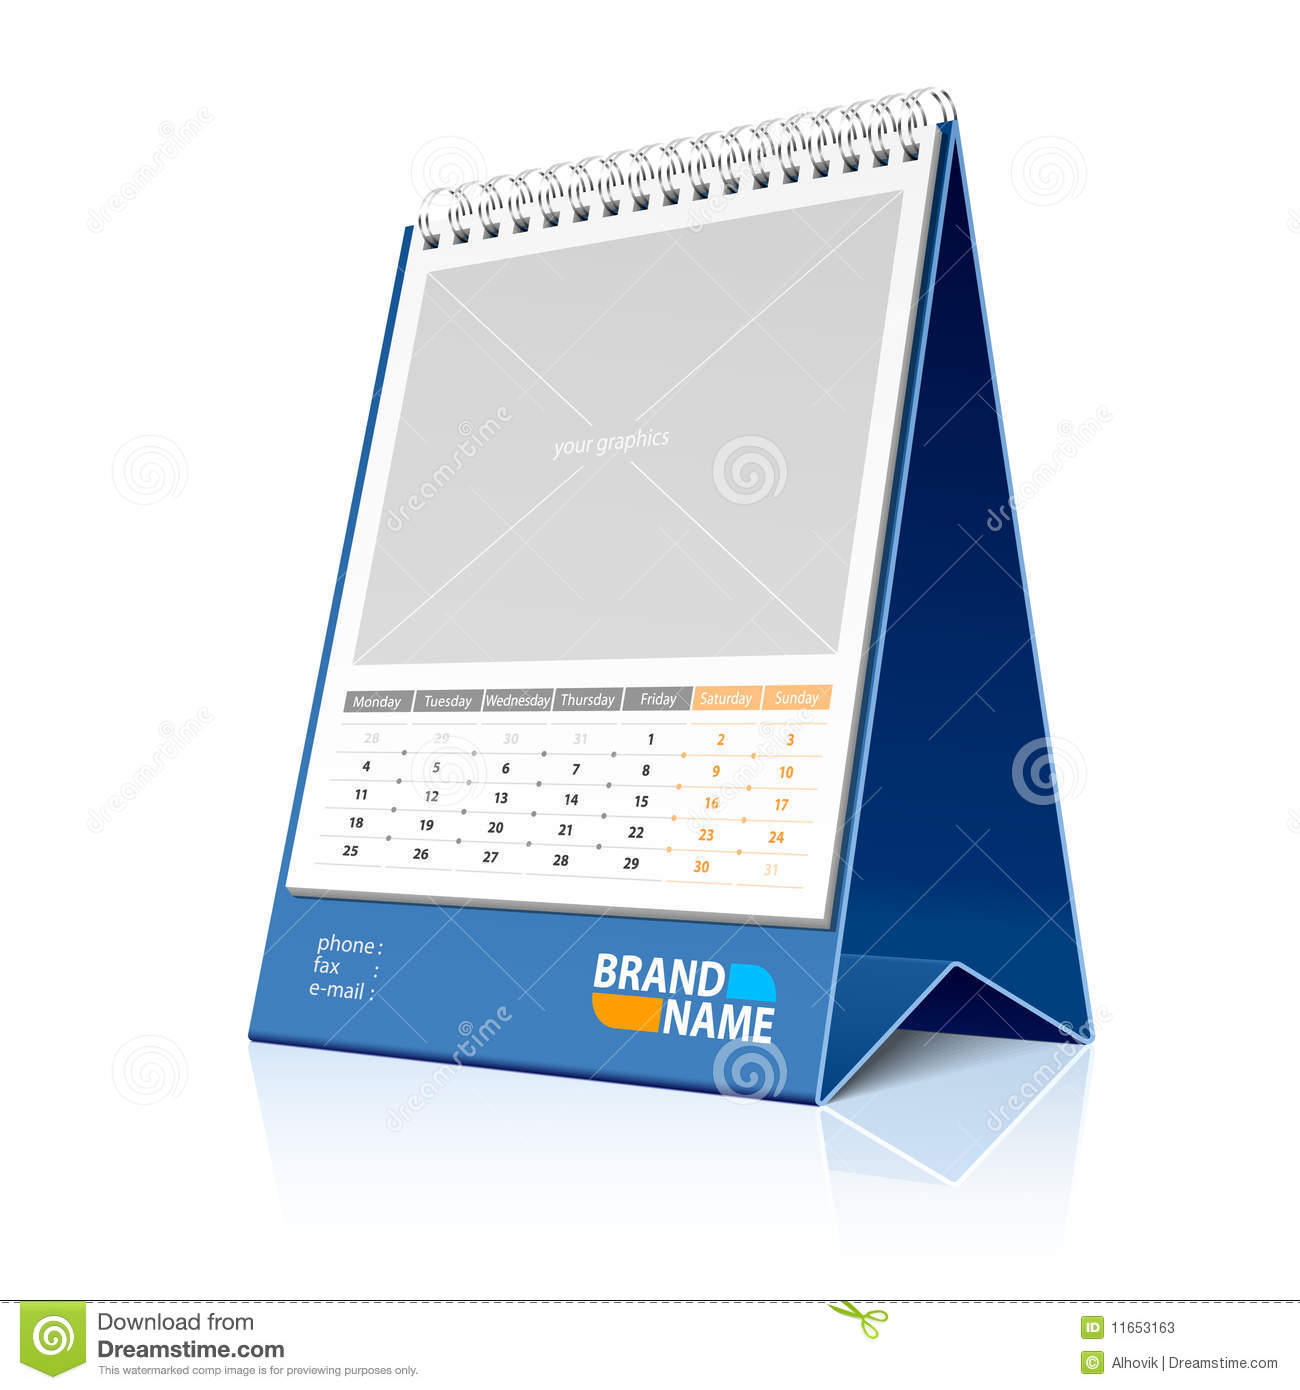 Vector illustration of a desktop calendar detailed portrayal place